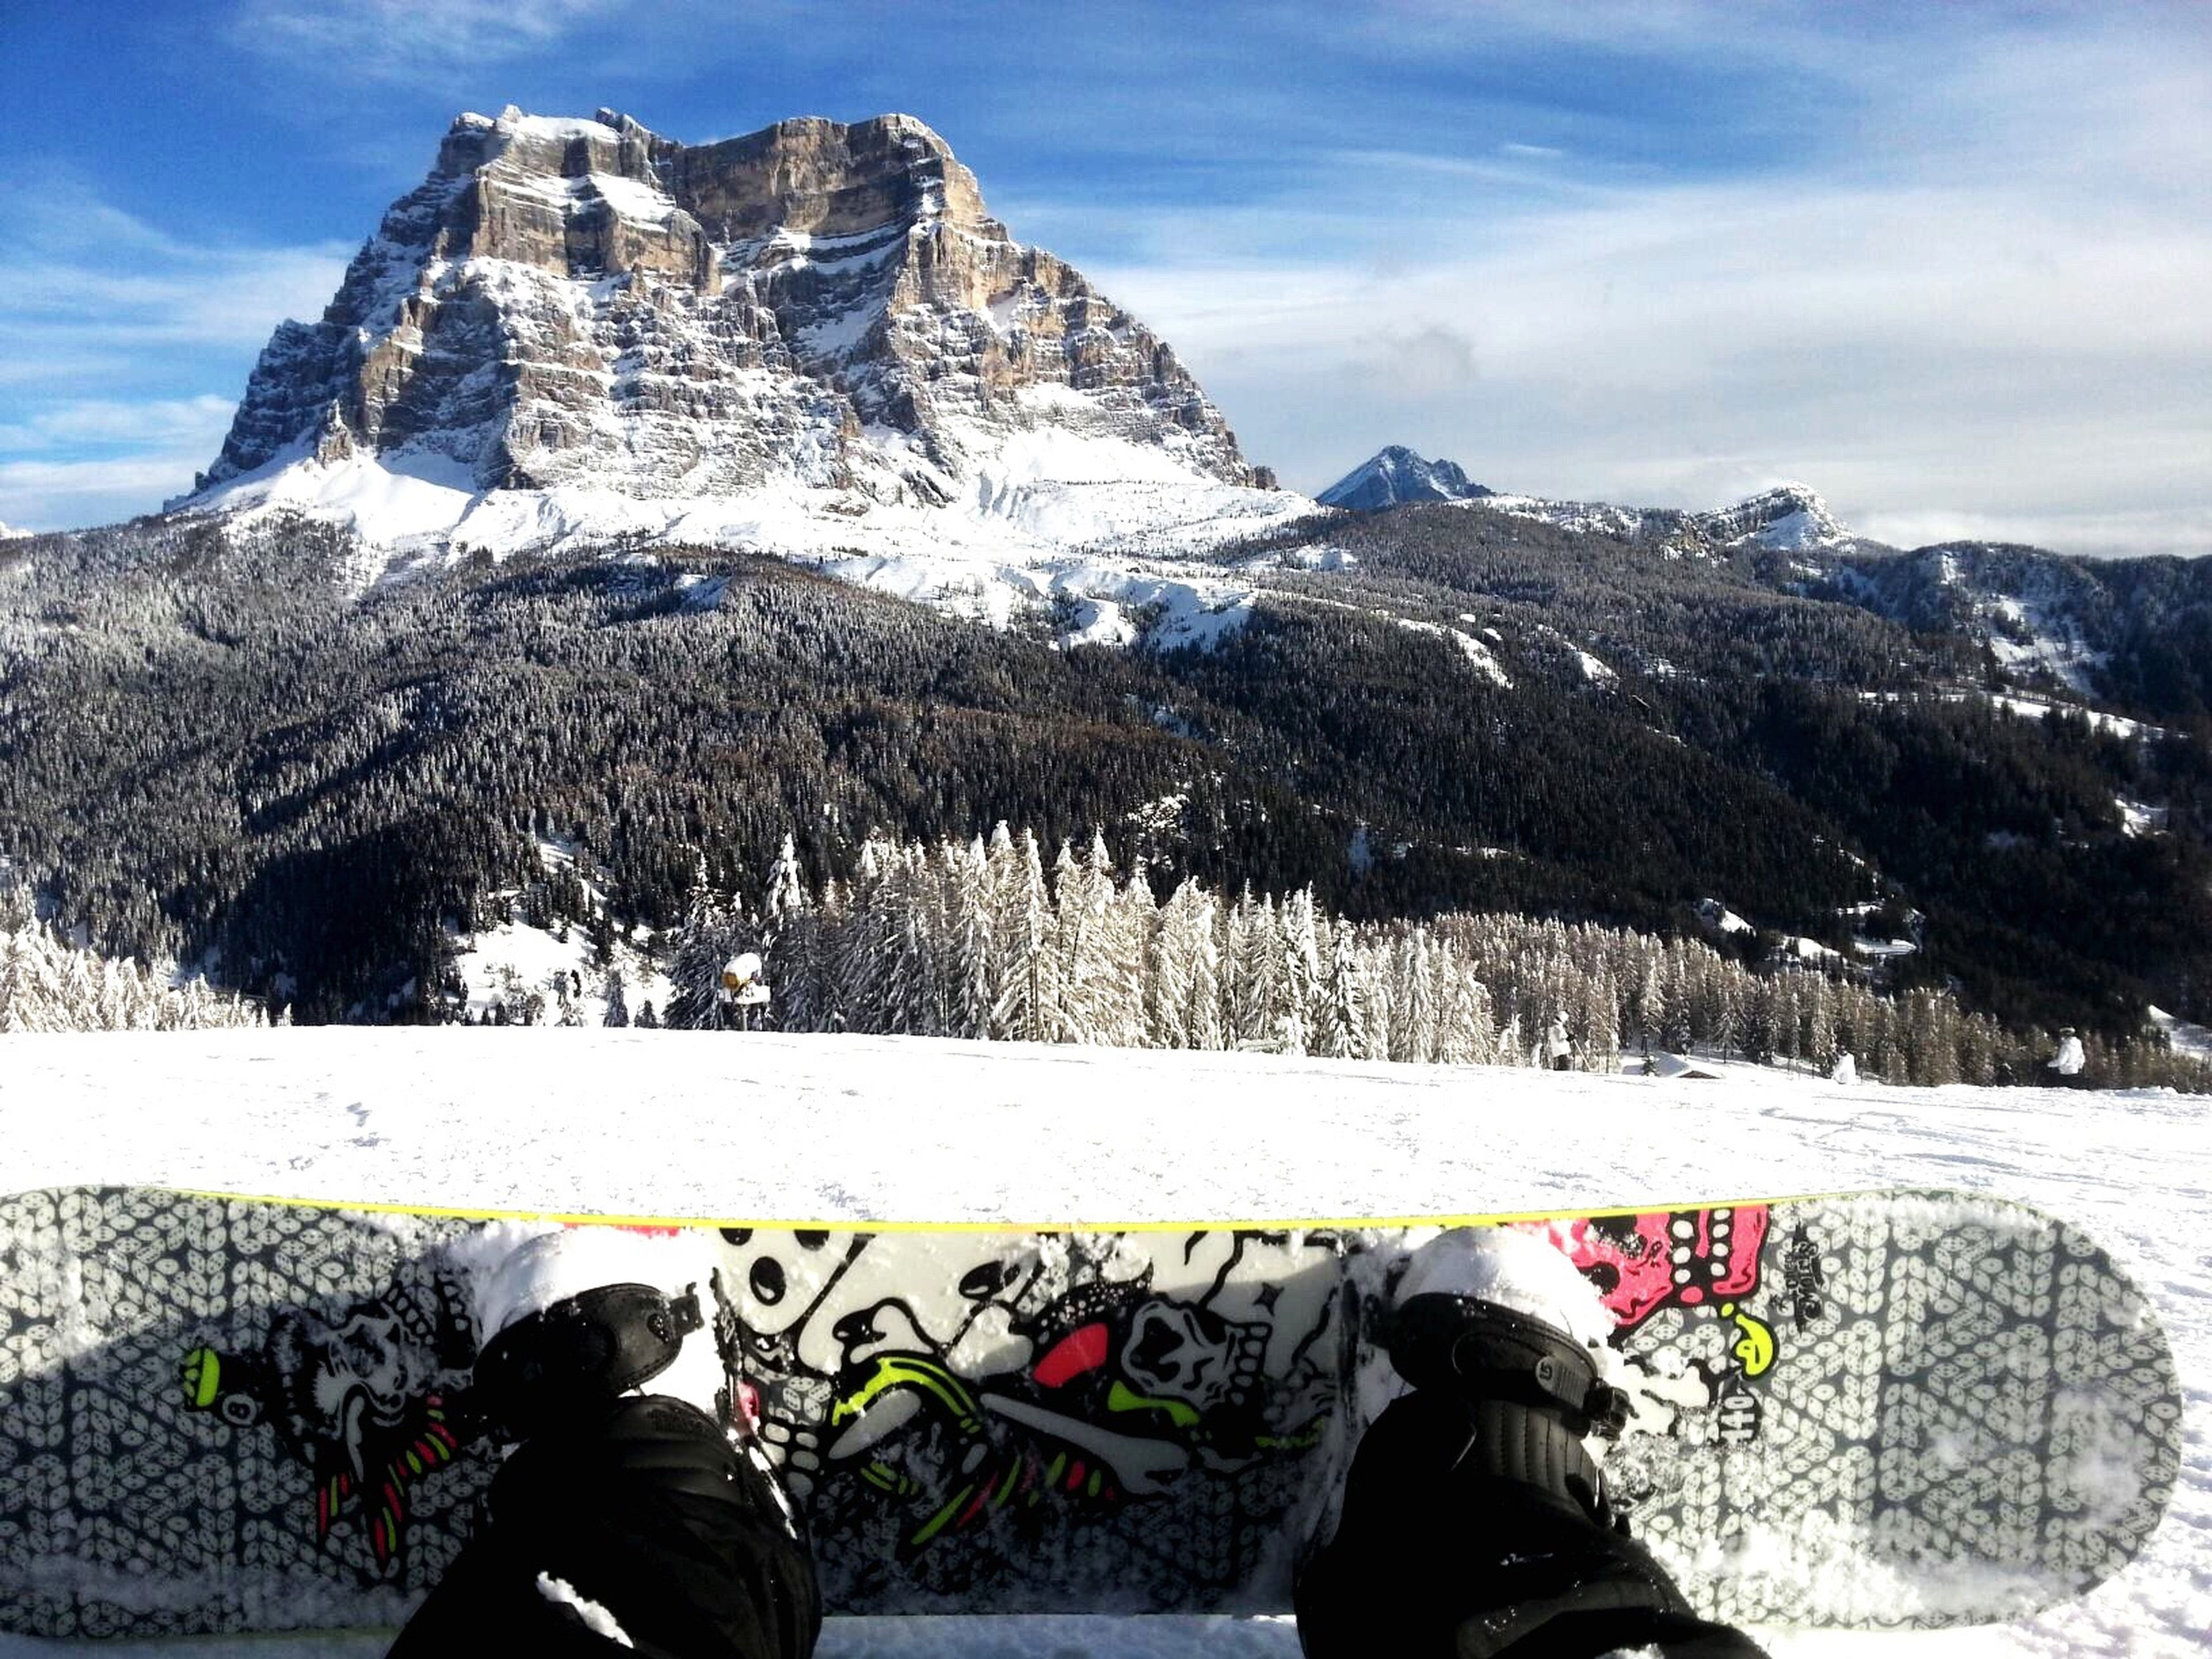 snow, cold temperature, winter, mountain, season, lifestyles, men, leisure activity, low section, shoe, sky, weather, standing, mountain range, personal perspective, unrecognizable person, nature, person